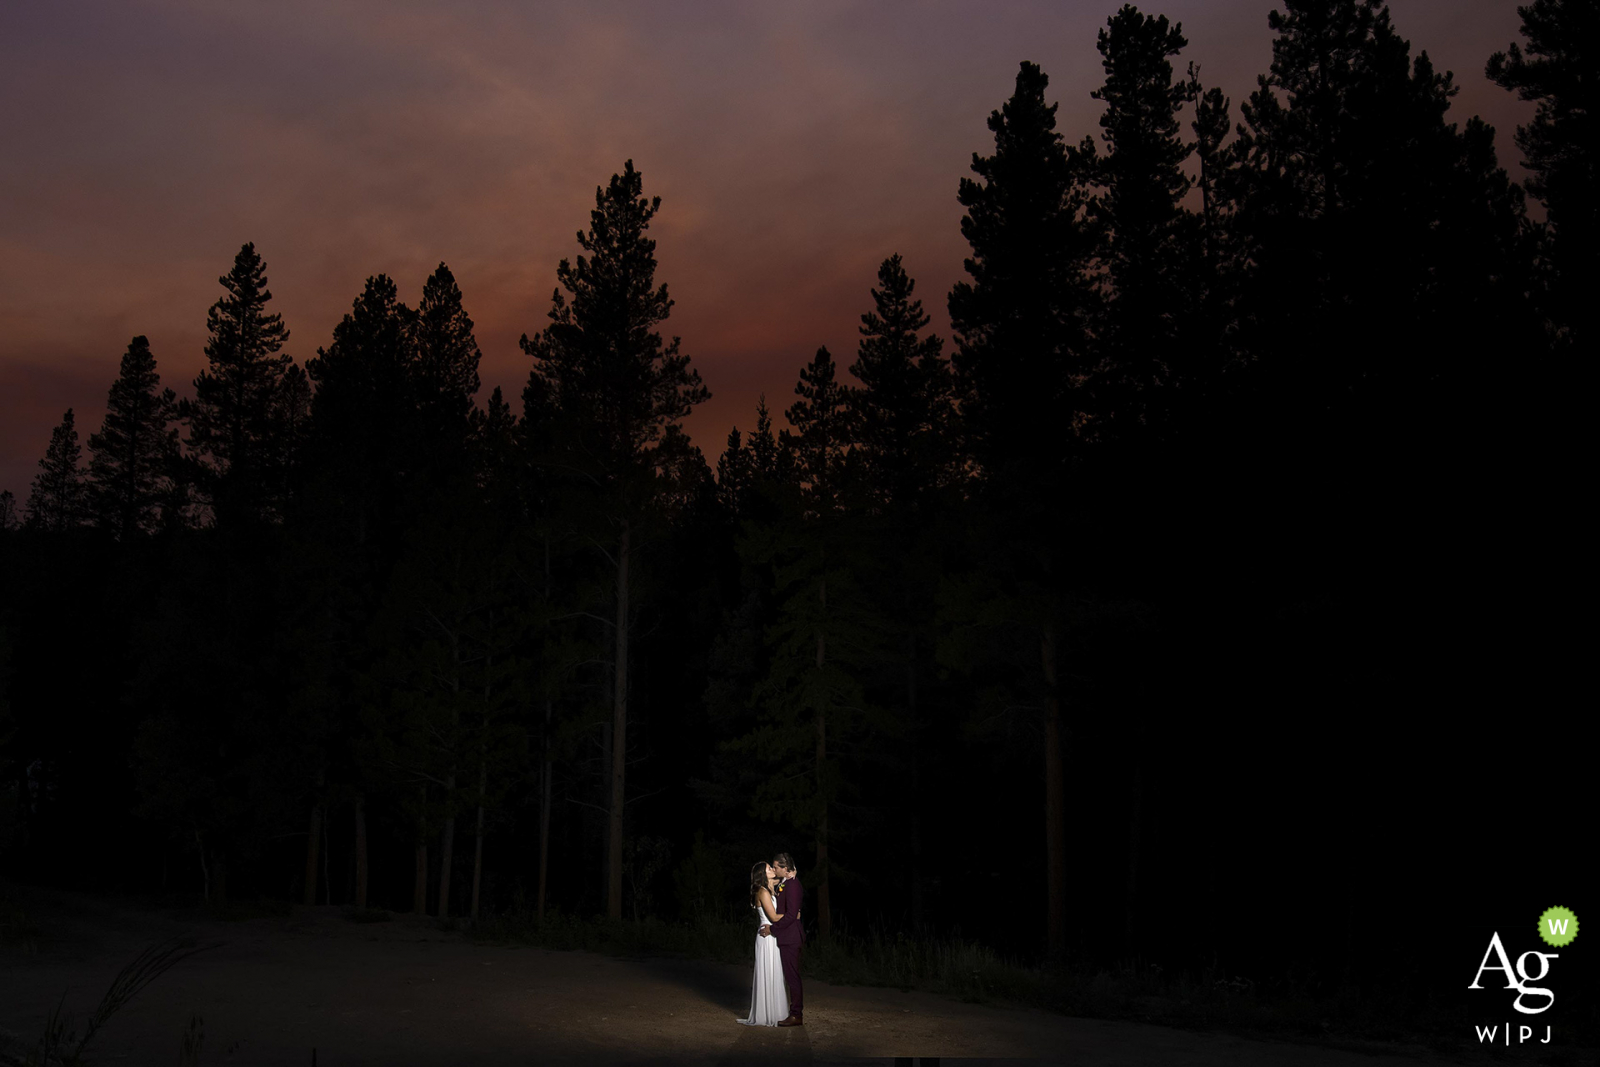 Black Hawk, CO bride and groom wedding portrait session during sunset after their elopement ceremony